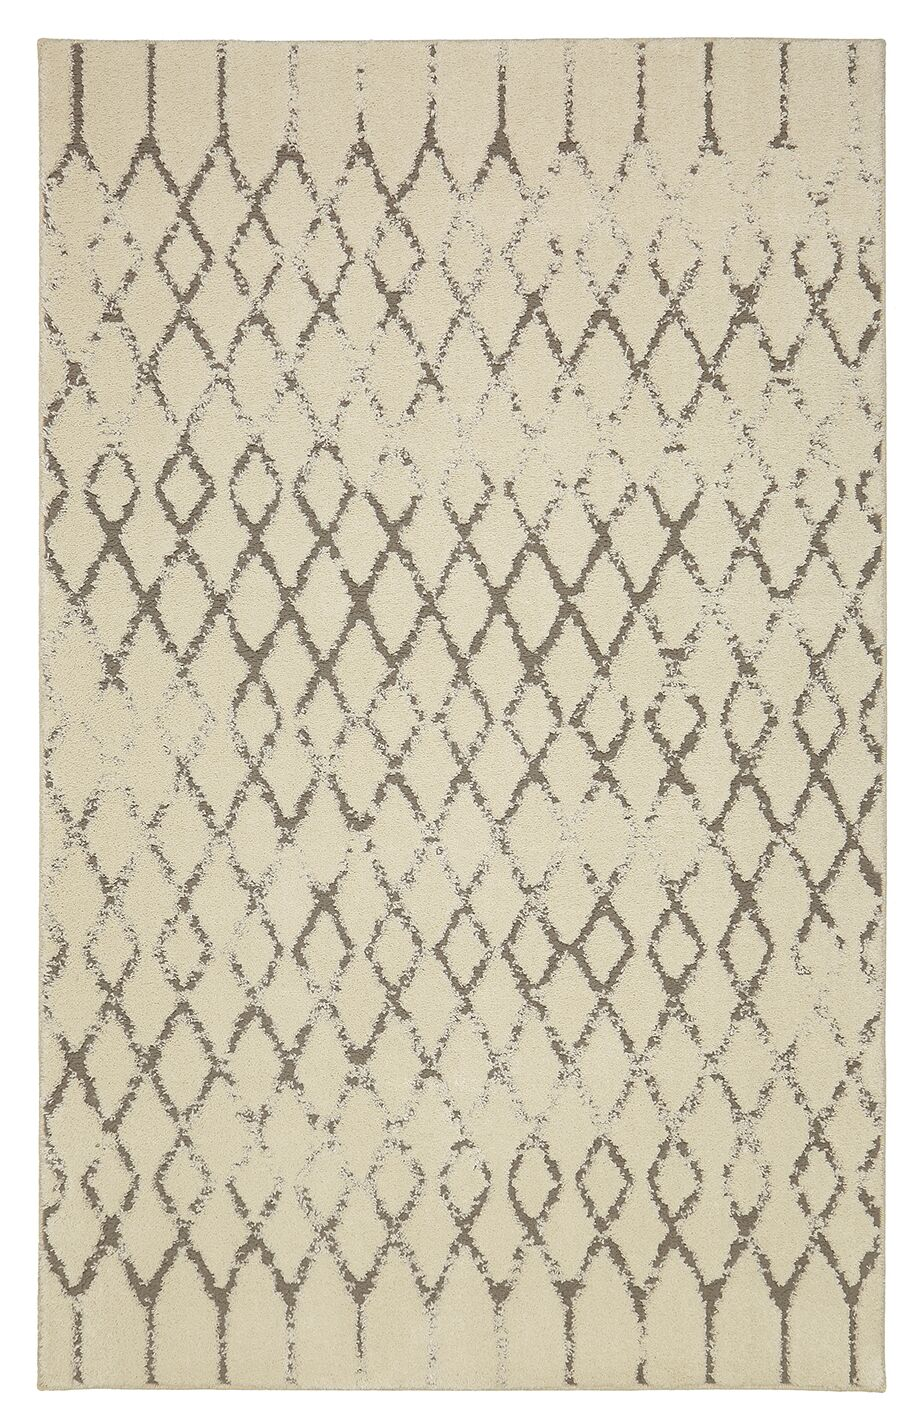 Carlsbad Gray/Beige Area Rug Rug Size: Rectangle 5' x 8'